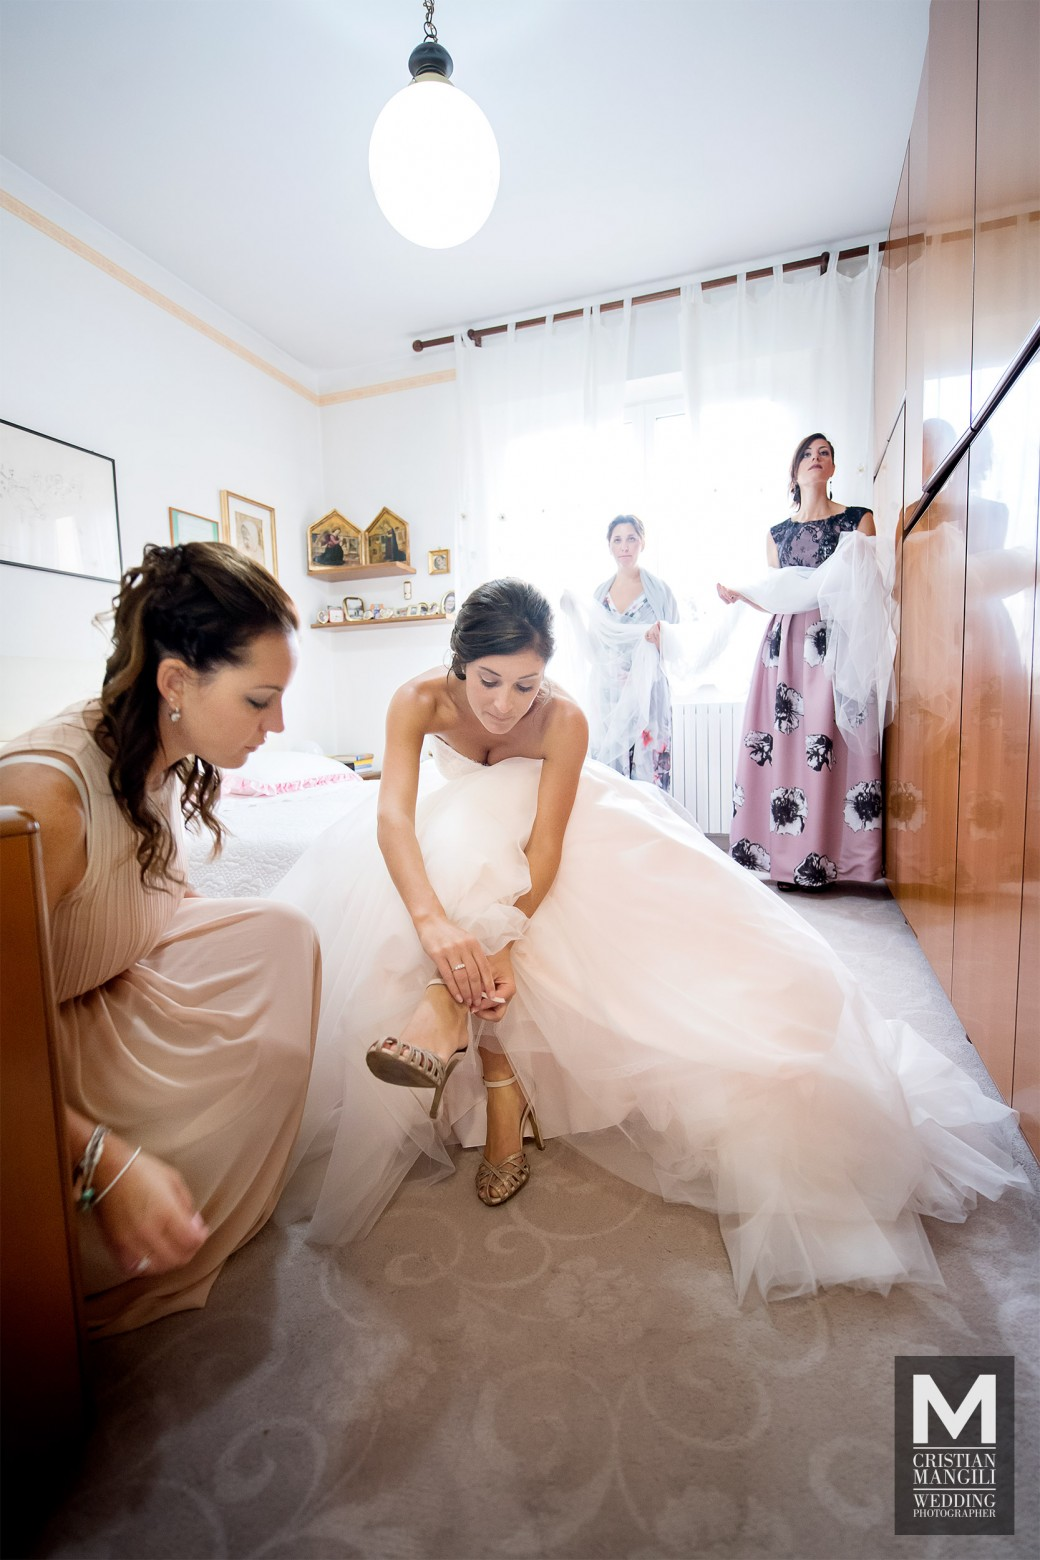 Bride-wearing-shoes-italian-wedding